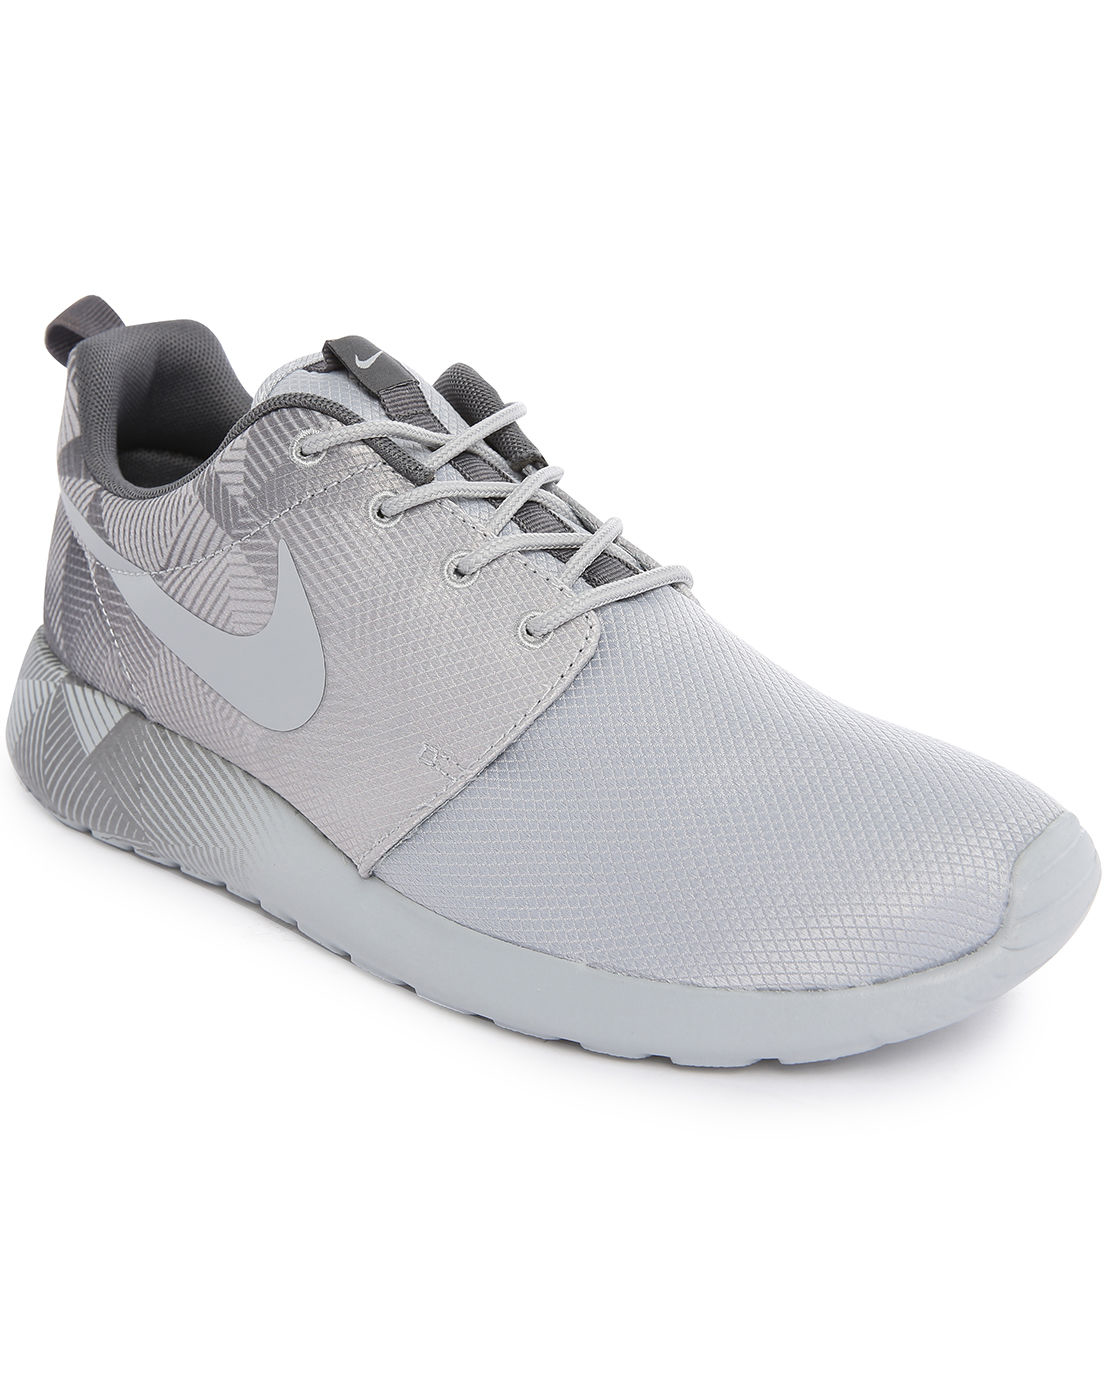 nike roshe run mesh print grey mono sneakers in gray for. Black Bedroom Furniture Sets. Home Design Ideas